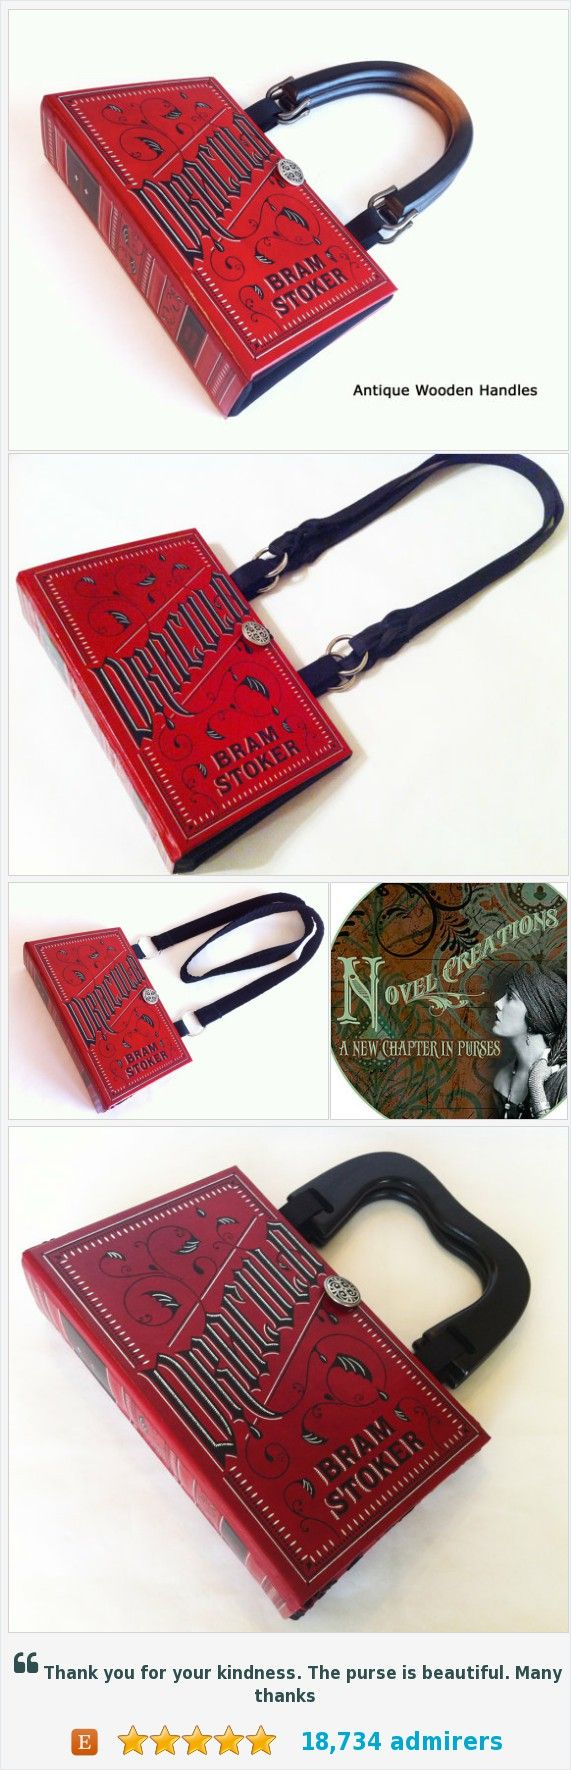 Dracula Book Purse - Dracula Book Clutch #etsy @novelcreations https://www.etsy.com/NovelCreations/listing/72629514/dracula-book-purse-dracula-book-clutch?ref=shop_home_active_13